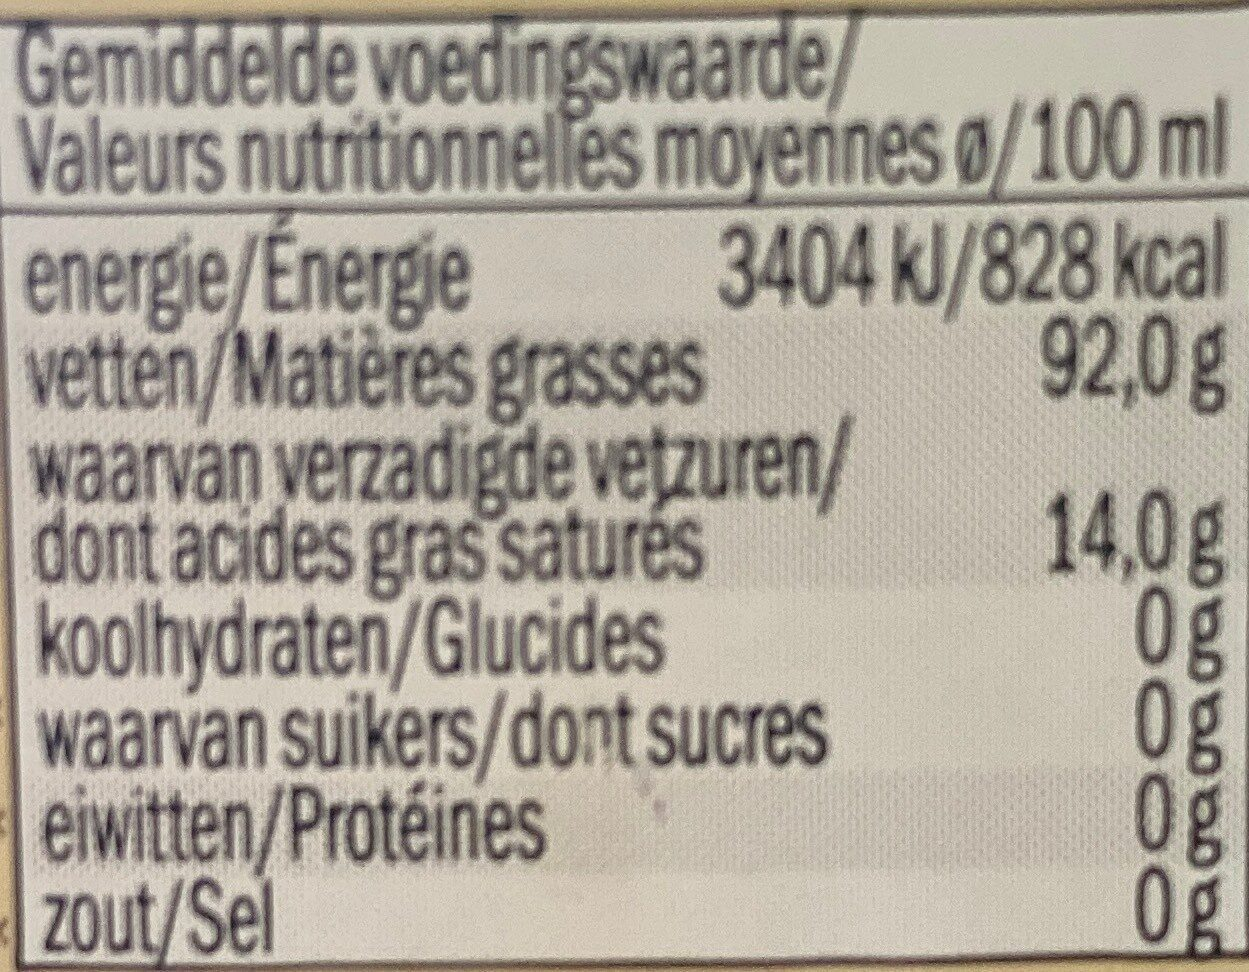 Huile d'olive extra vierge extra d'UE - Nutrition facts - fr